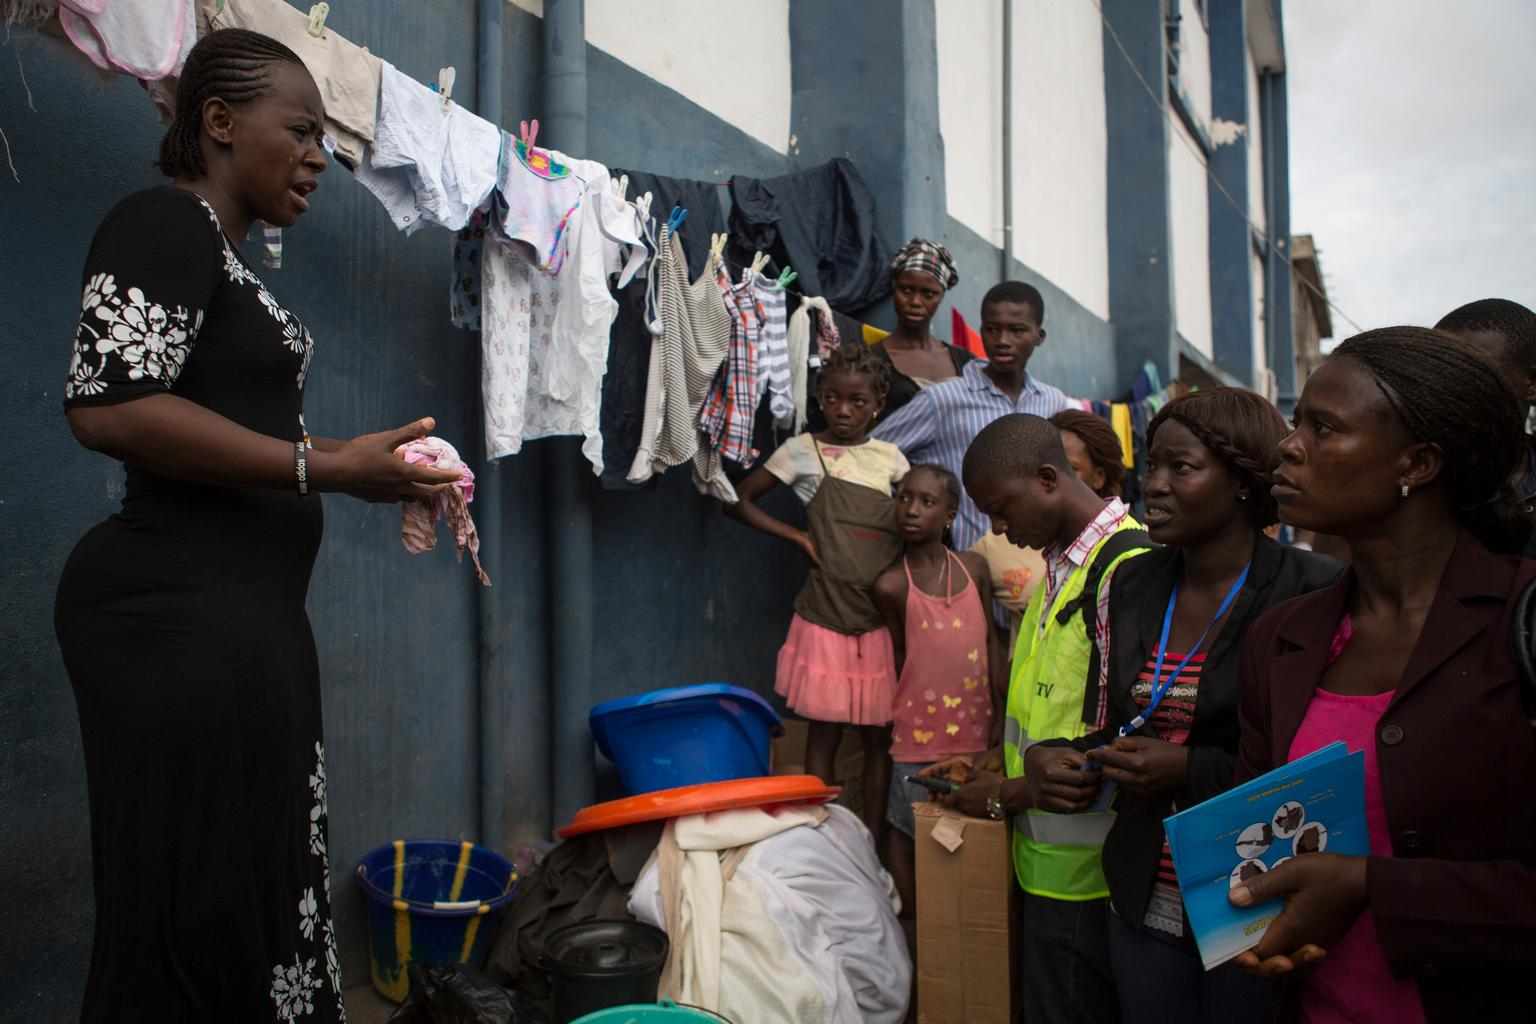 On 19 September, a social mobilizer speaks with residents about protecting themselves against Ebola.